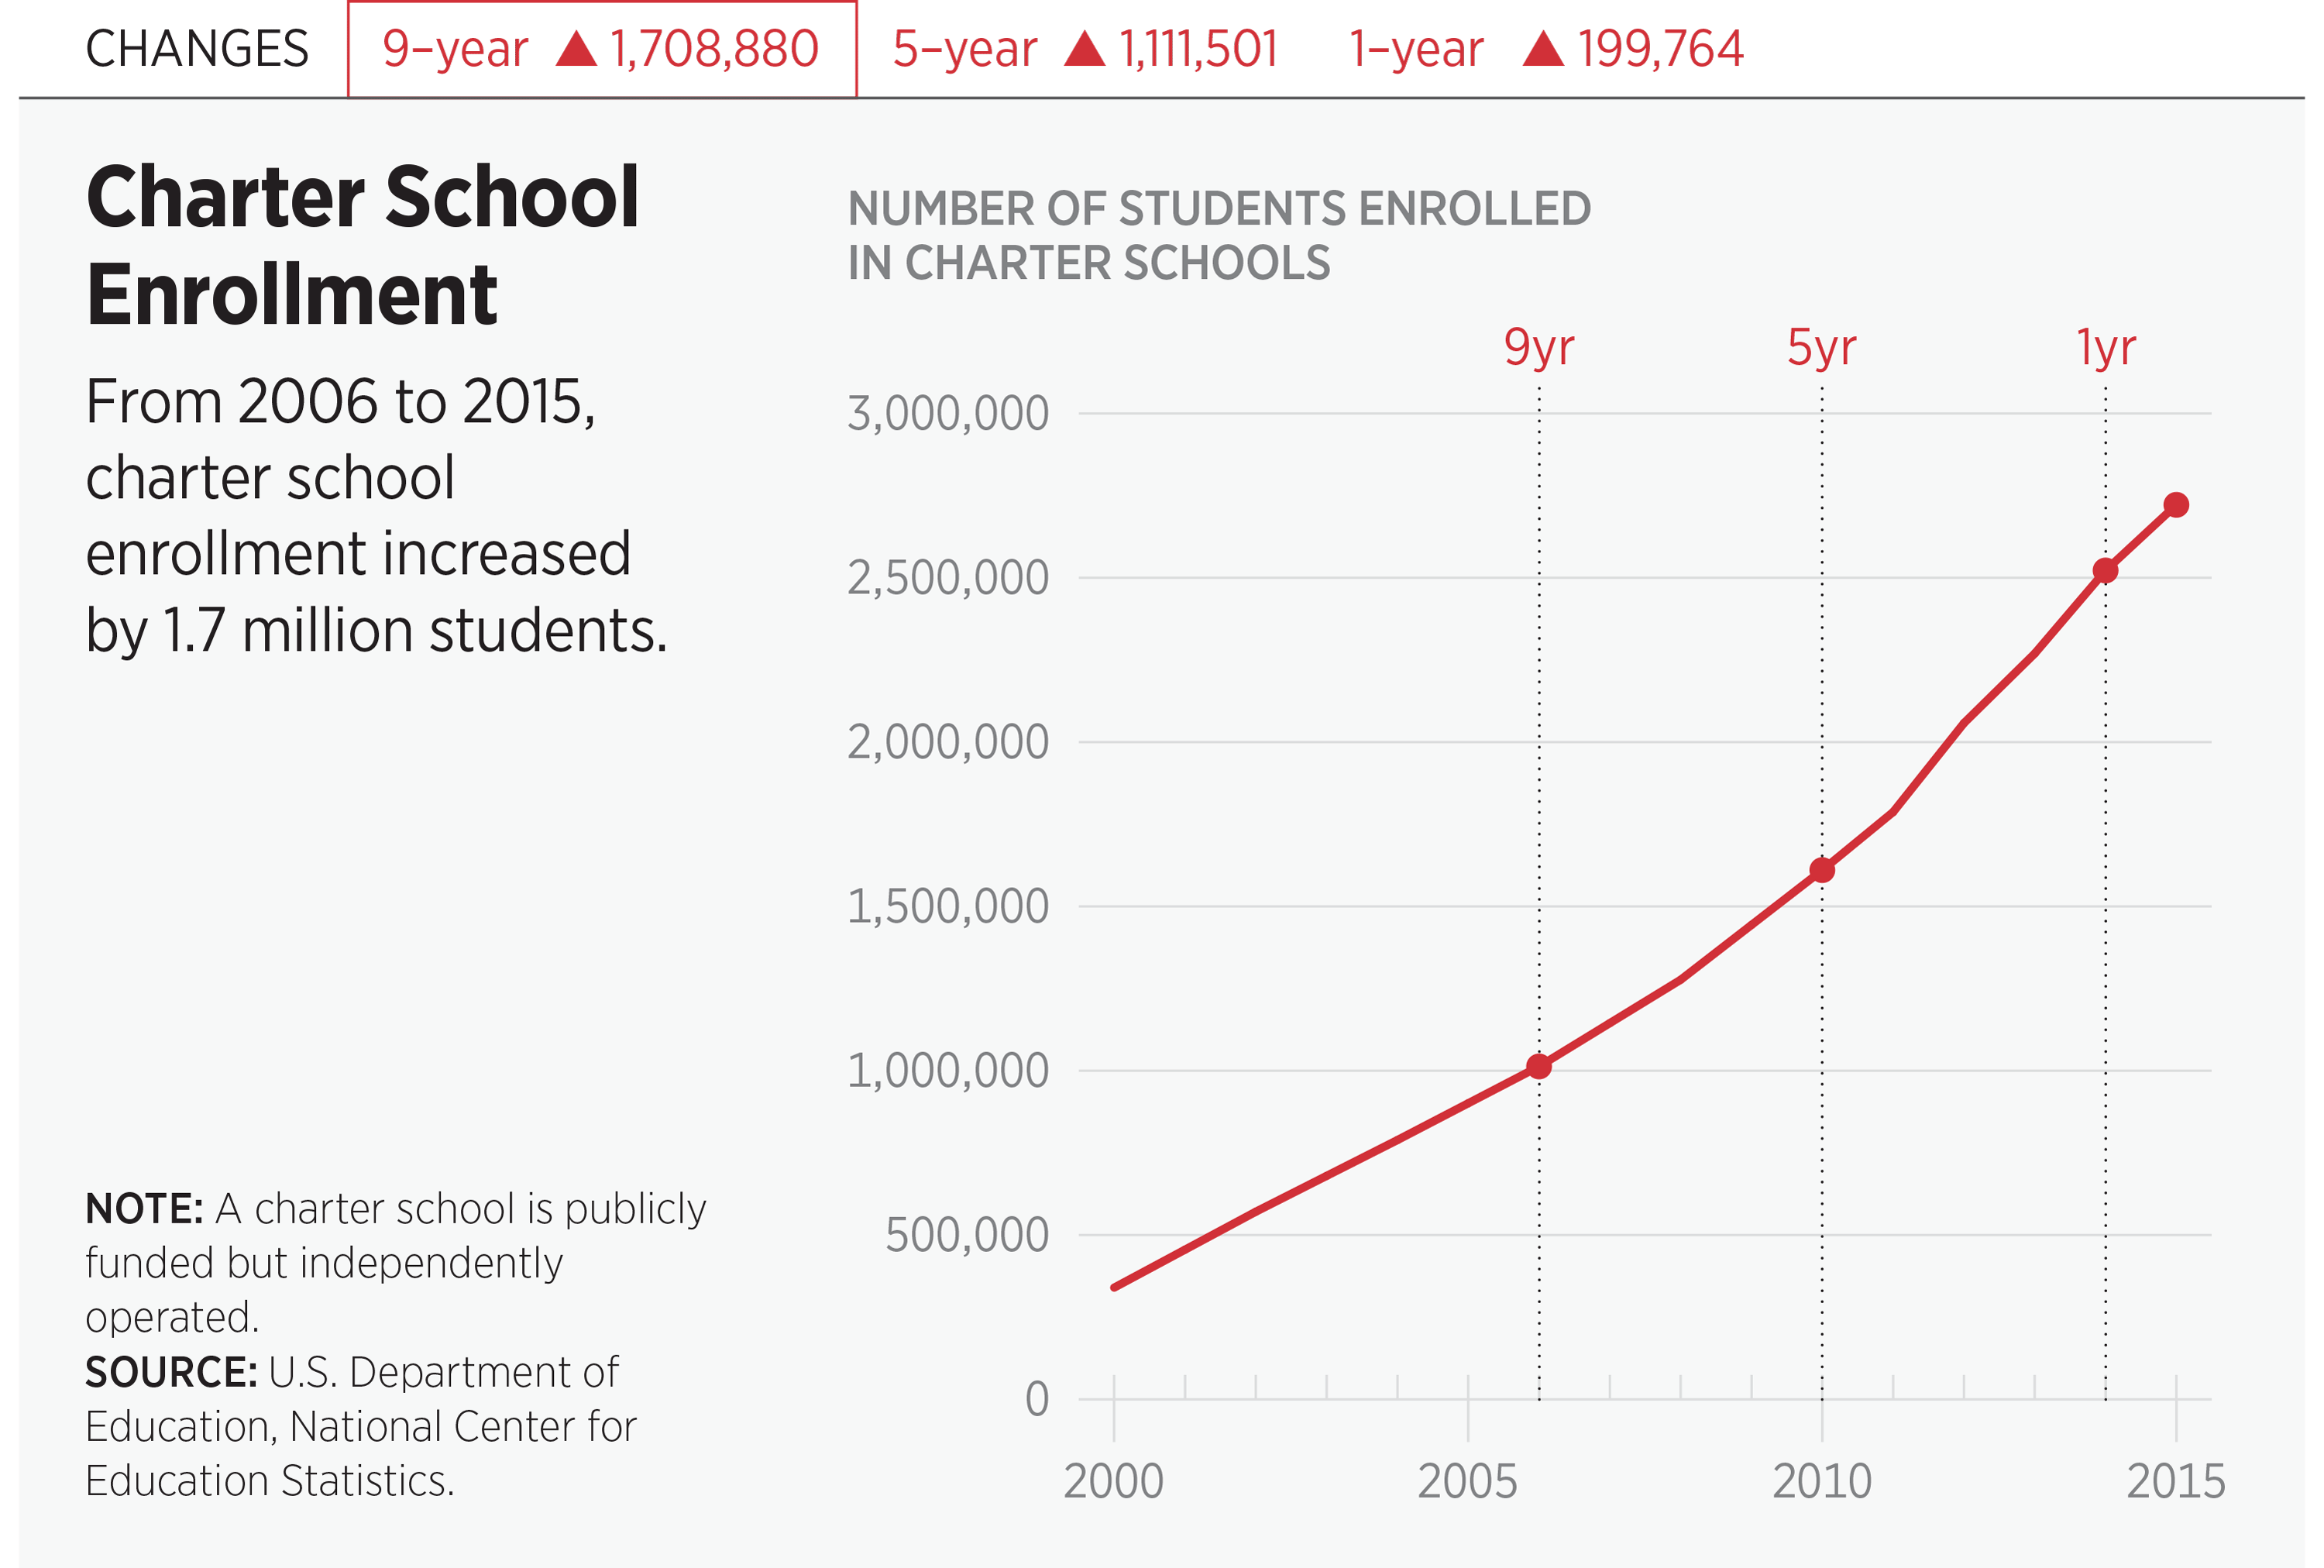 Charter School Enrollment